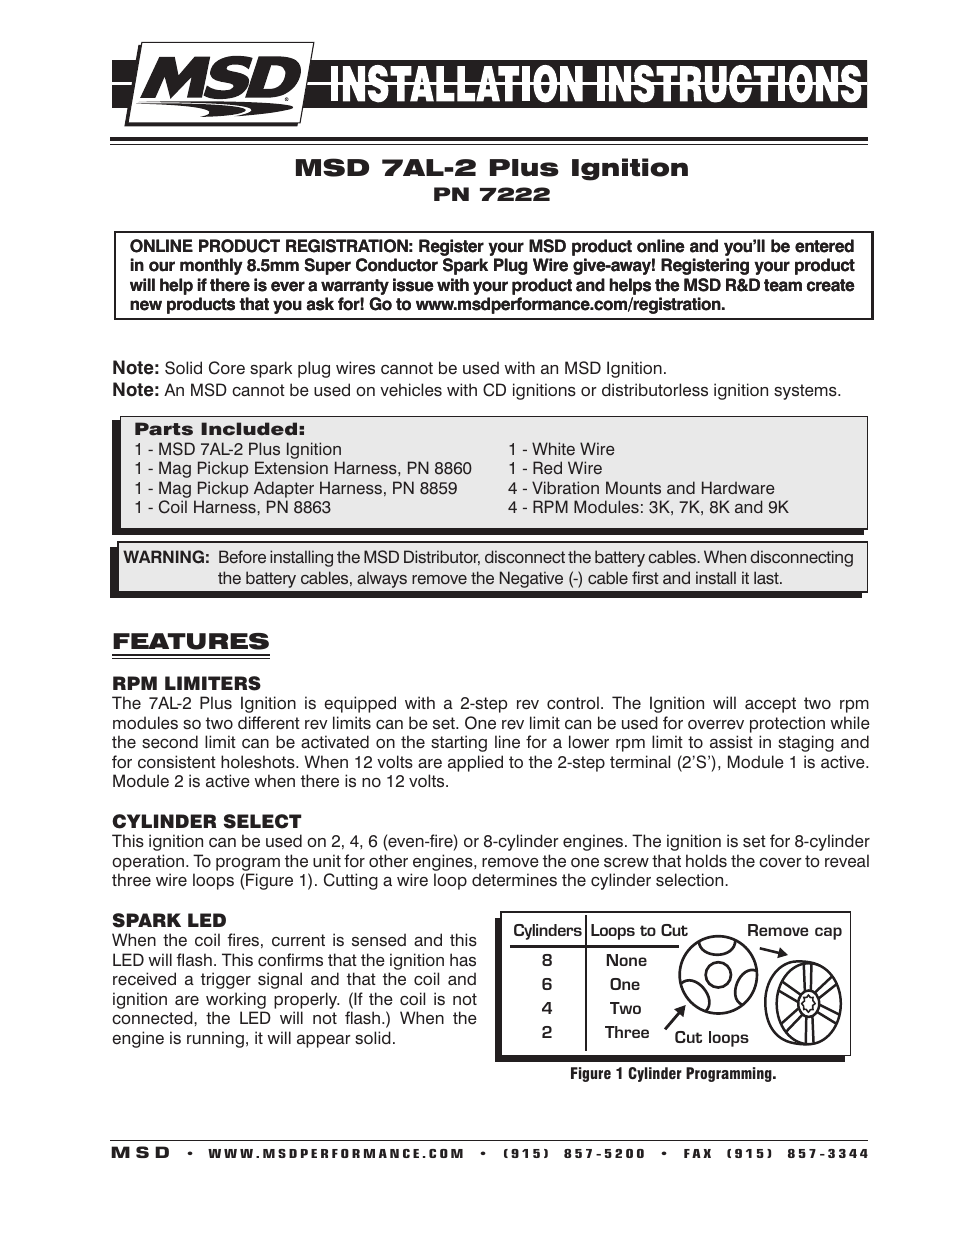 Lovely Msd Ignition Wiring Diagram Gallery - Everything You Need to ...